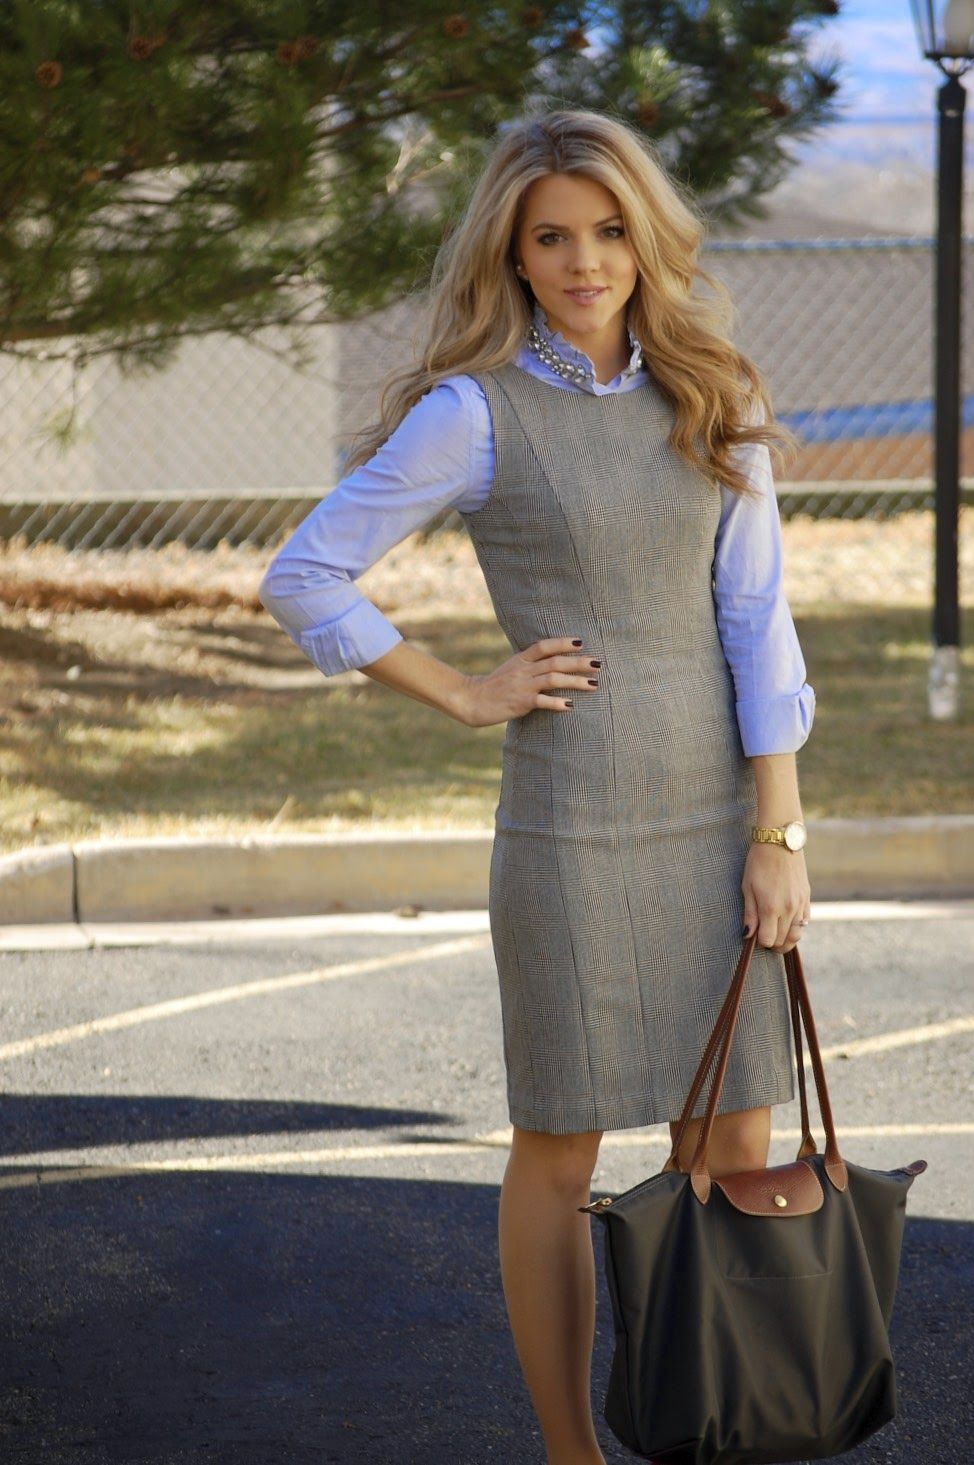 5c64d7f9cec2 PolishedandPink: wearing a collared shirt under a dress. Hmm, I wonder if I  could pull this off with my grey dress... More